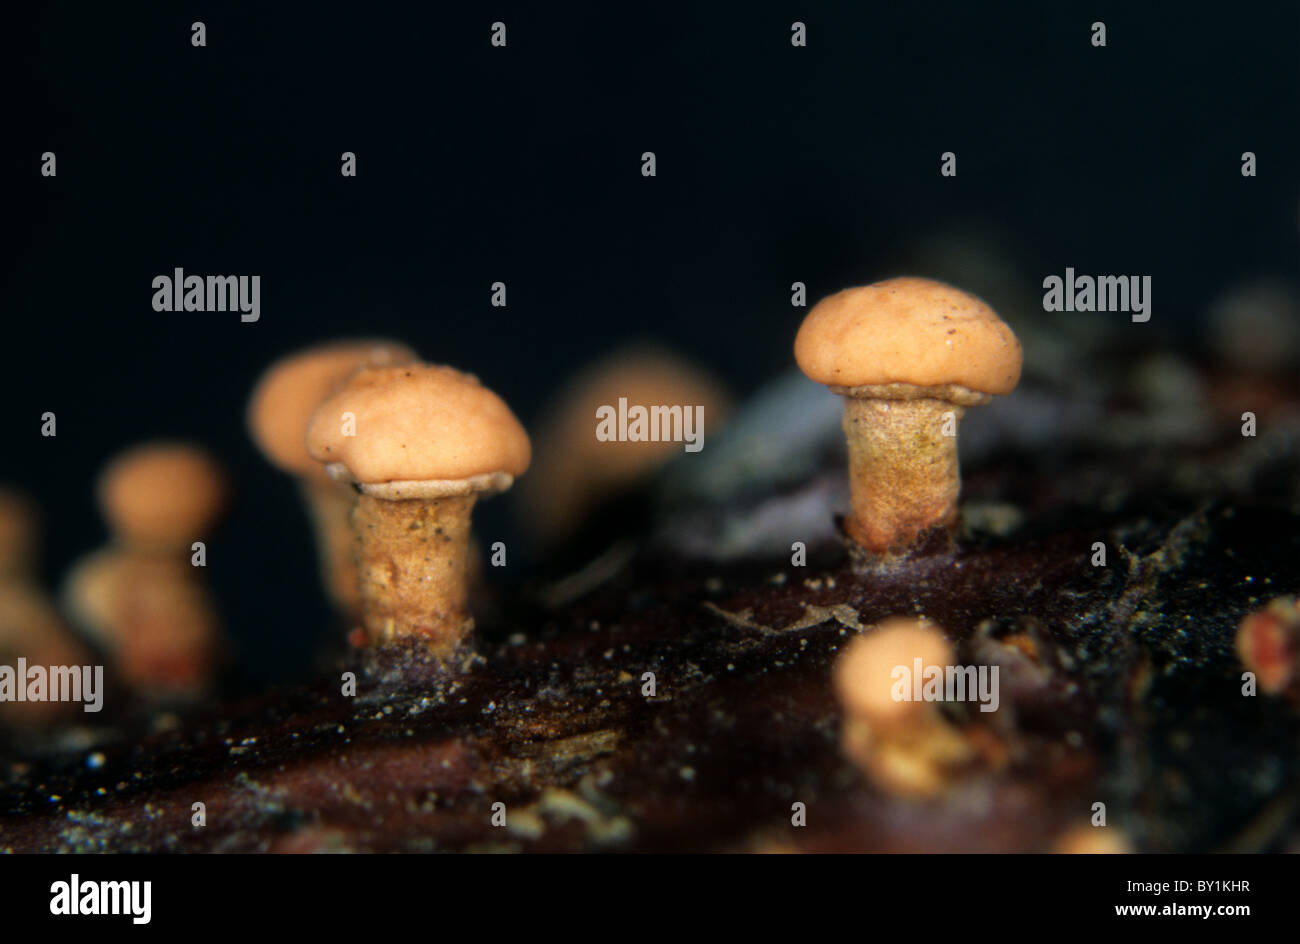 Coral spot (Nectria cinnabarina) fruiting bodies on dead wood - Stock Image